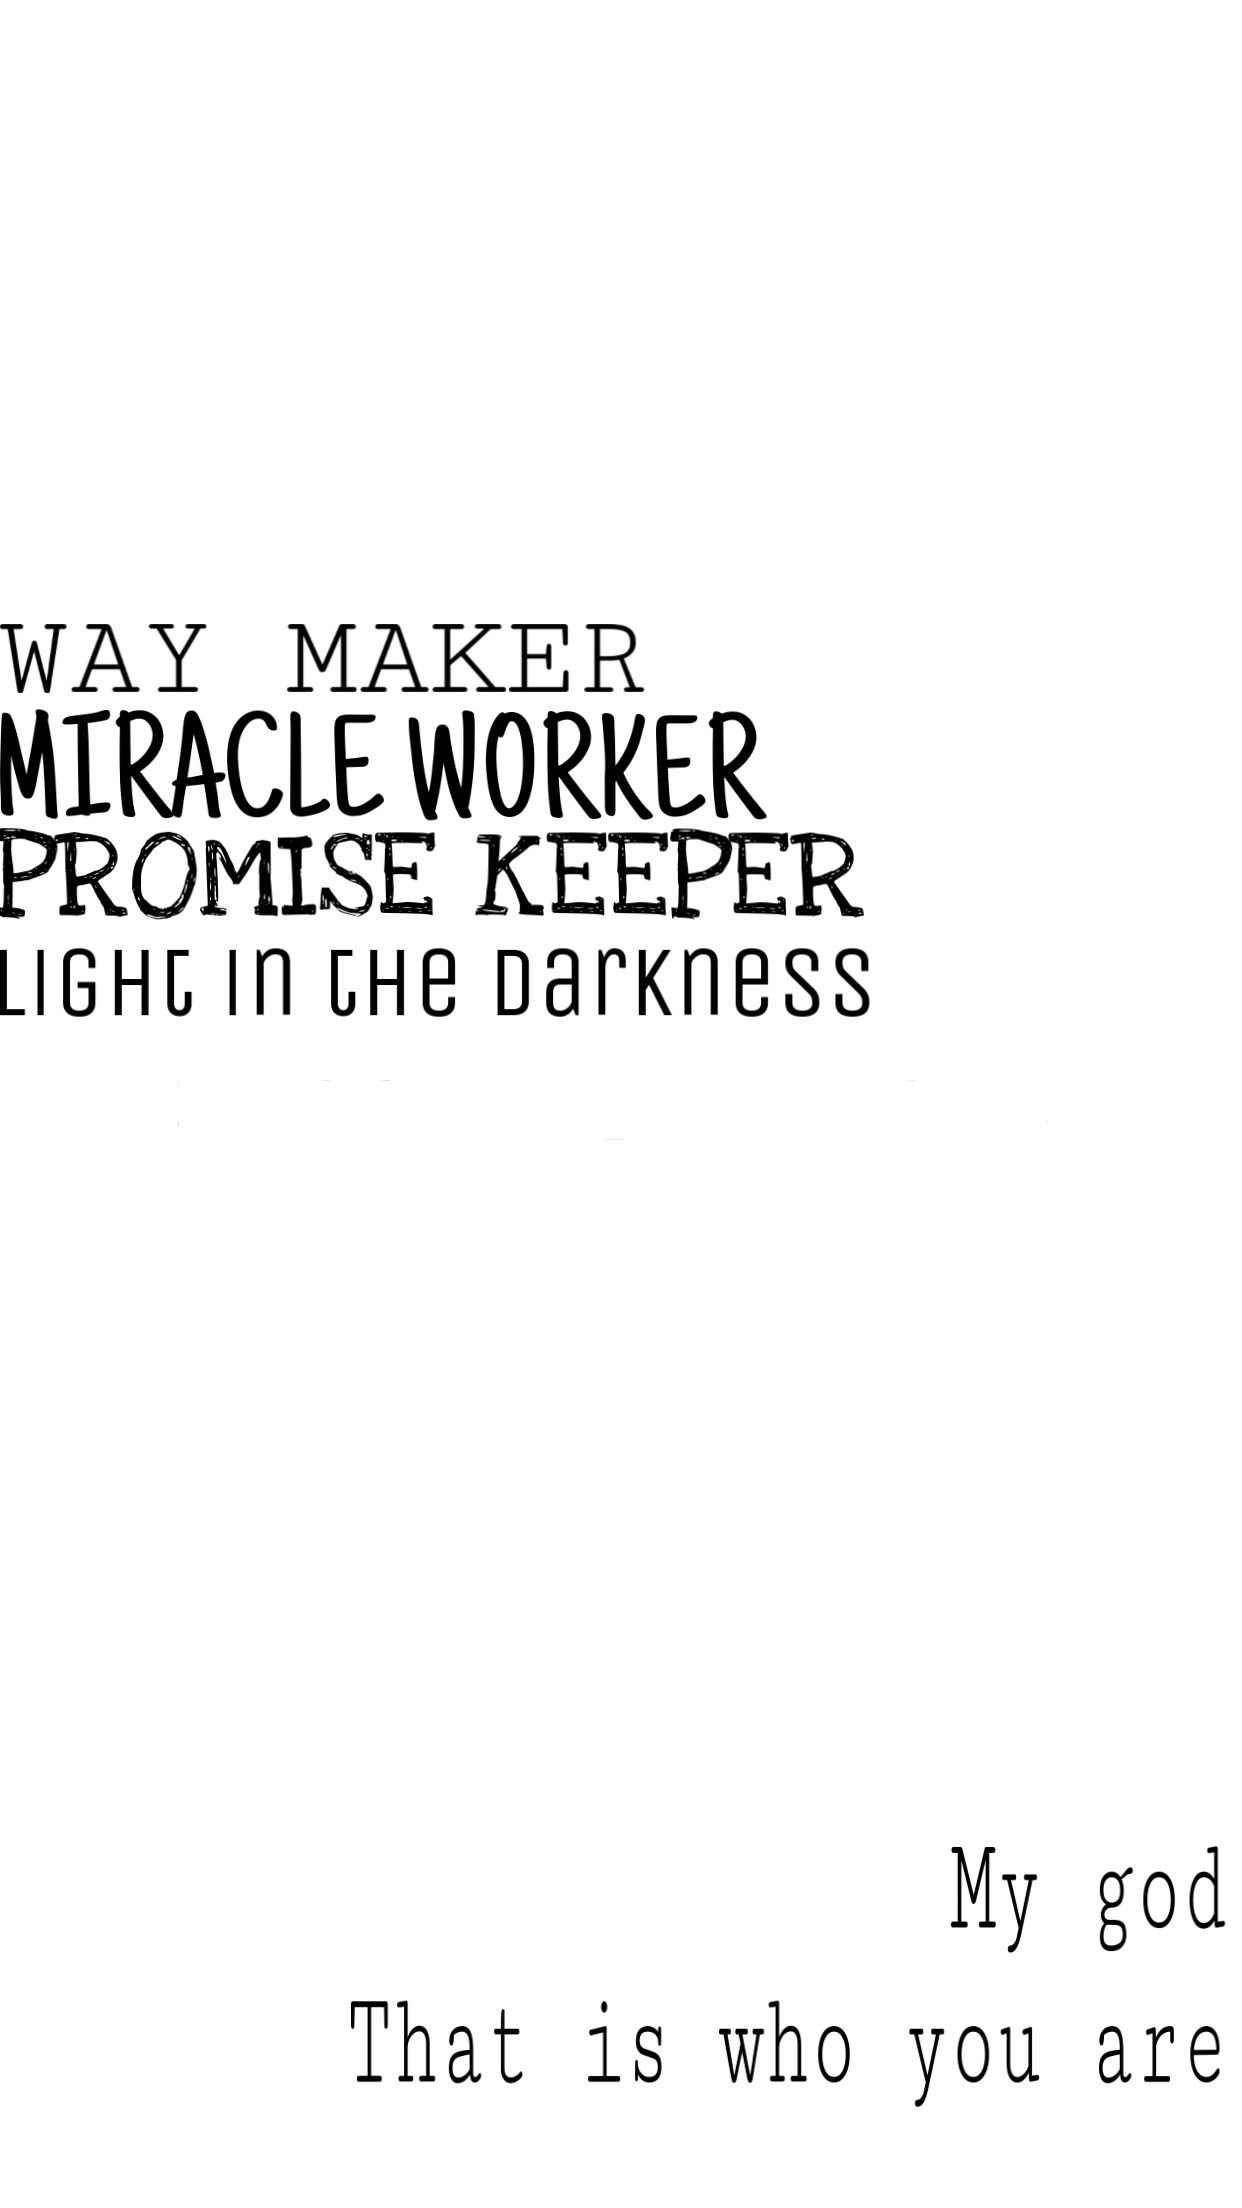 Way Maker Miracle Worker Promise Keeper Light In The Darkness Soul Scripts Inspirational Quotes Motivation Worship Lyrics